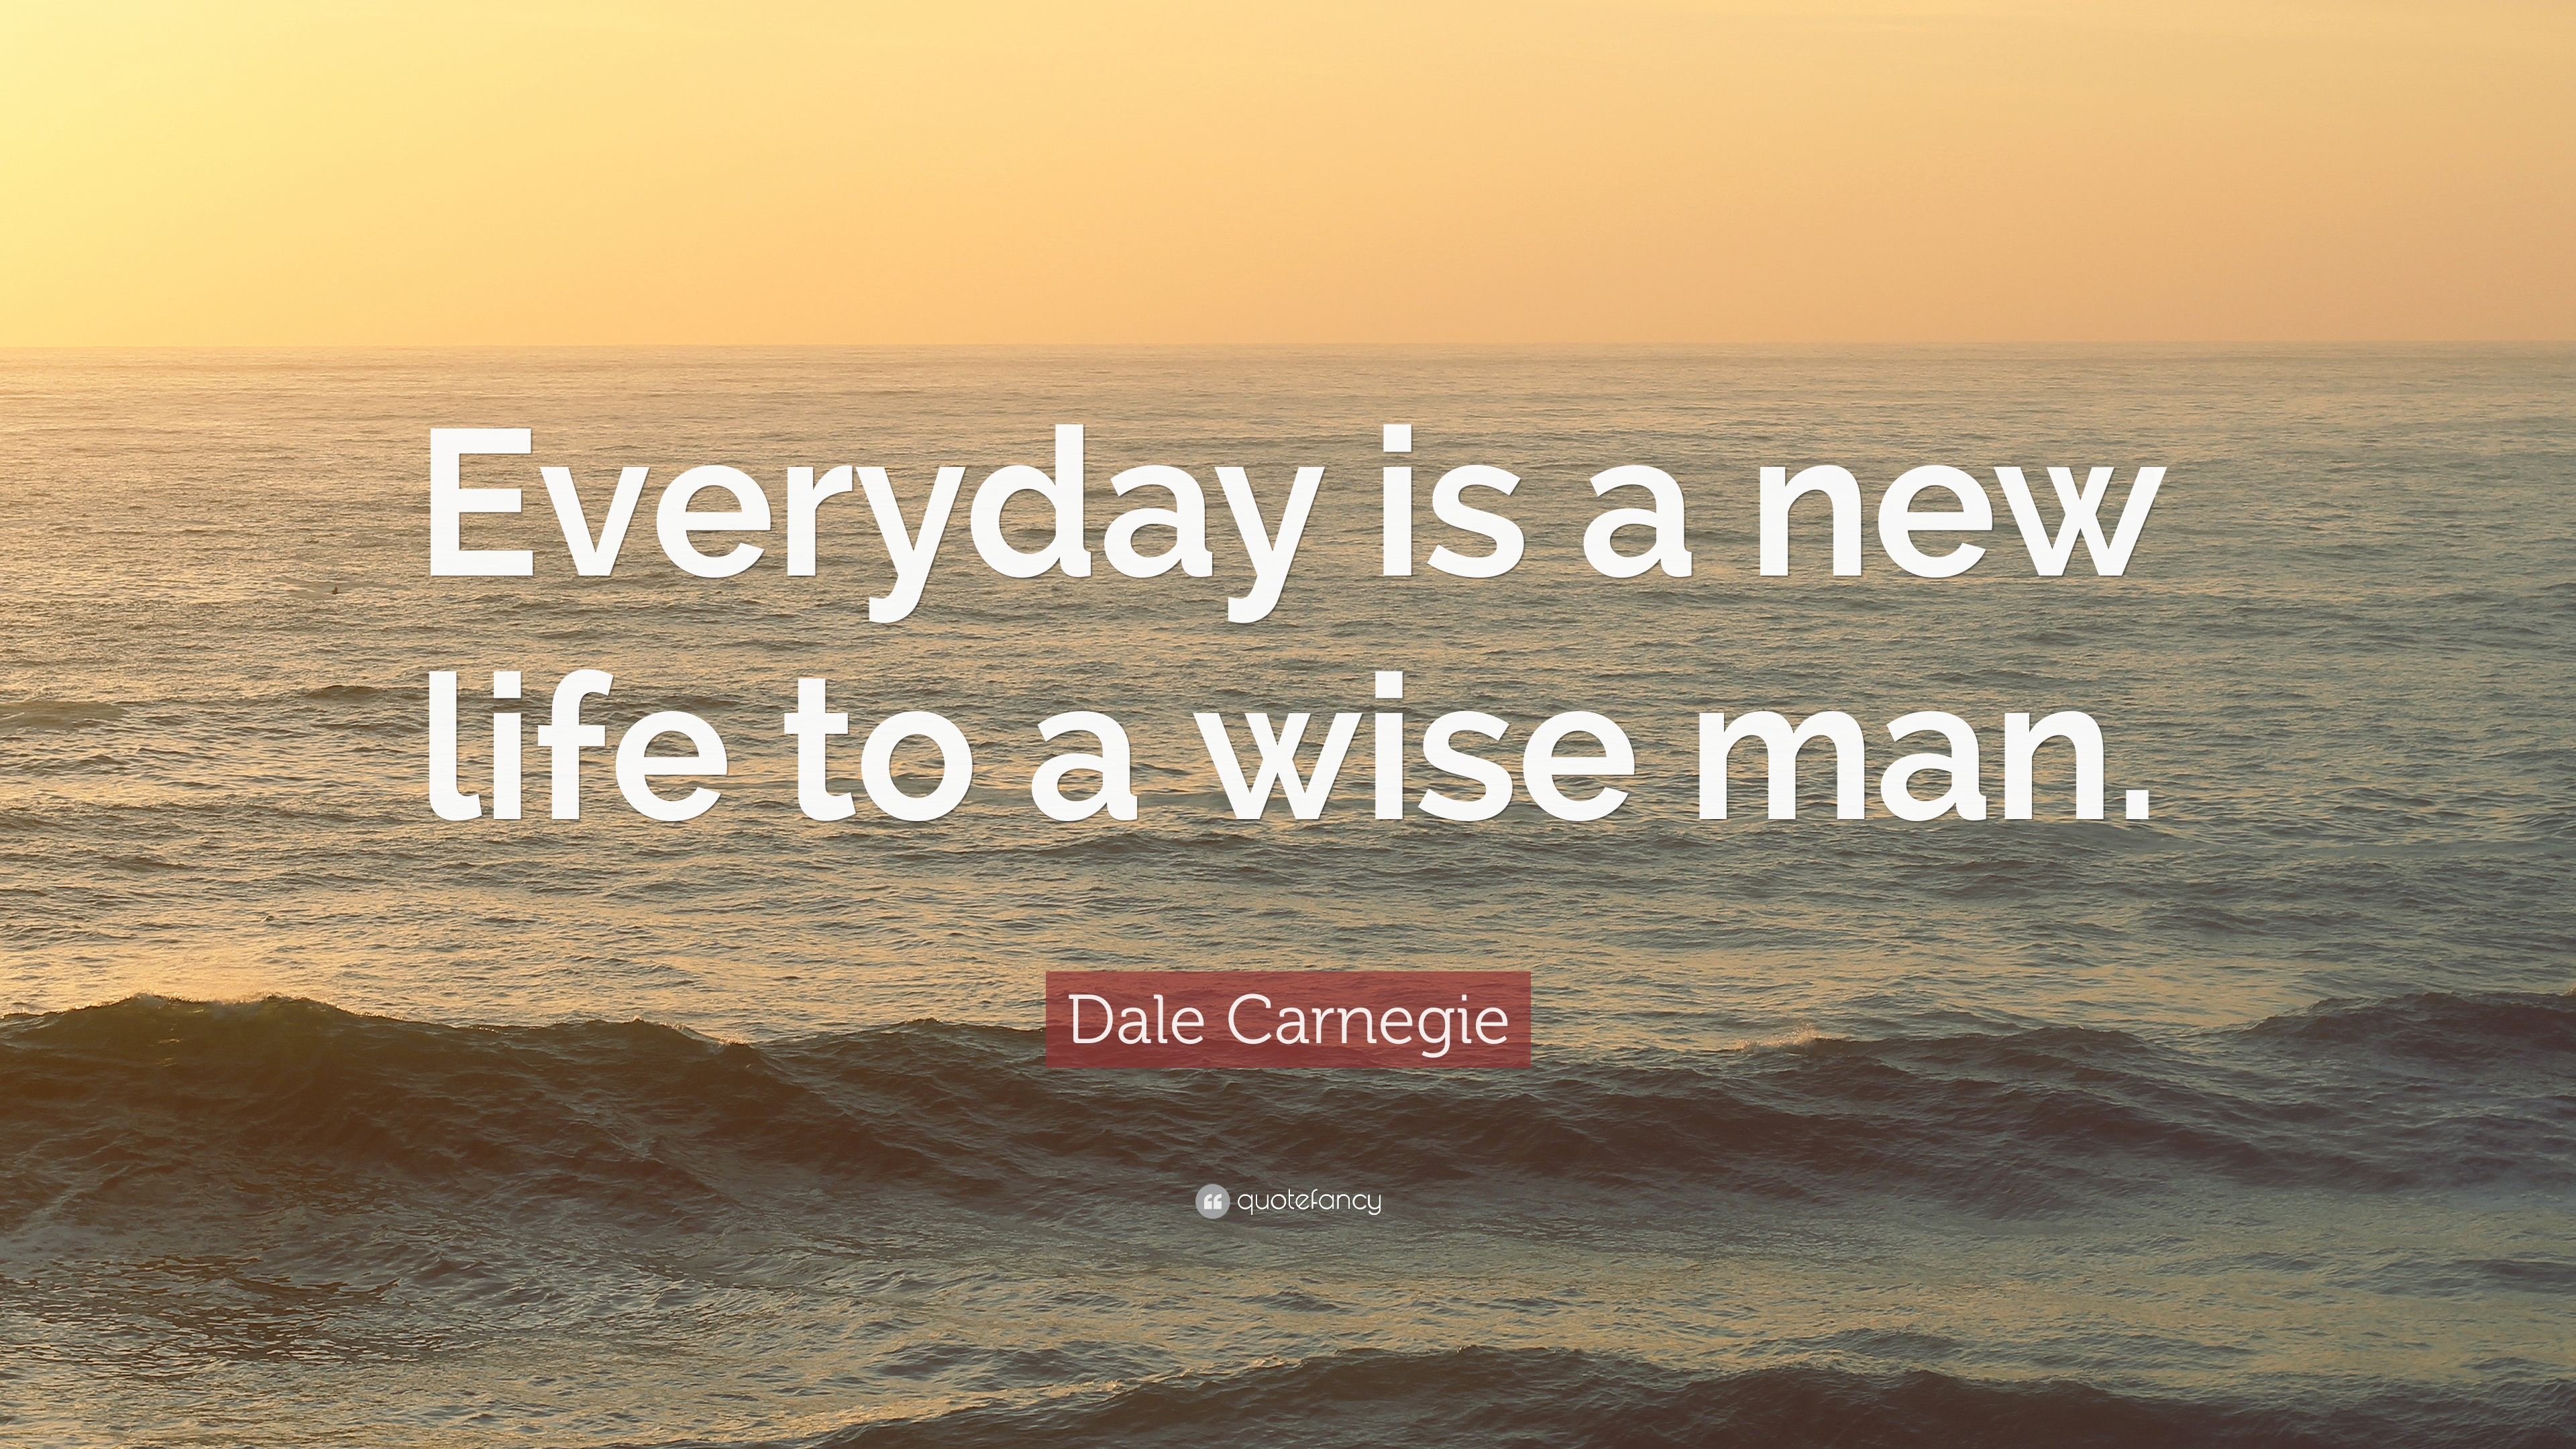 Dale Carnegie Quote Everyday Is A New Life To A Wise Man 12